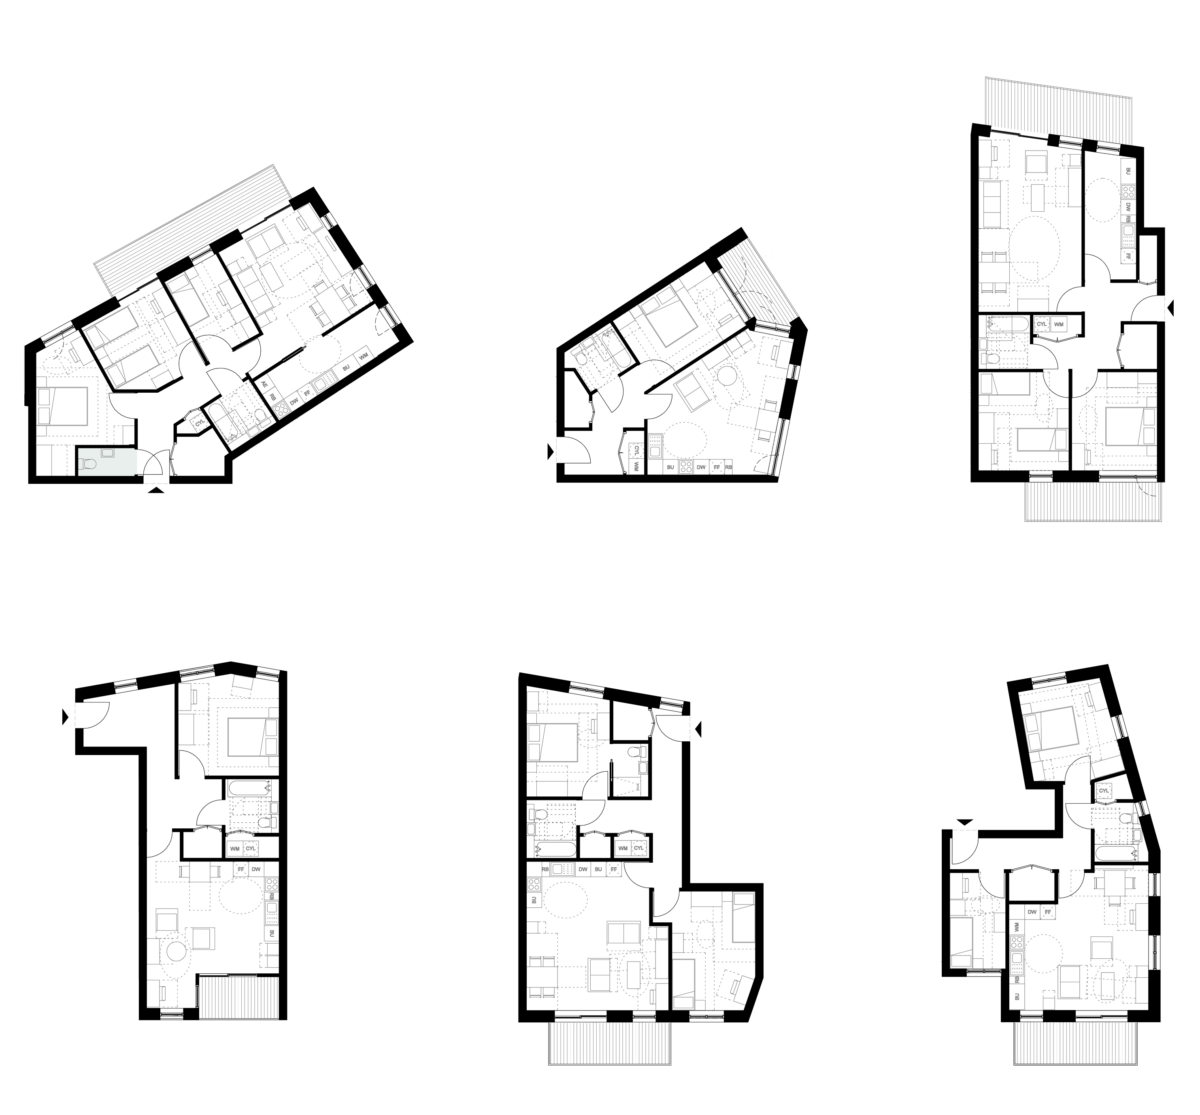 2365_A_XX_2003 - 5.3 block-residential layout type 3 - REV01